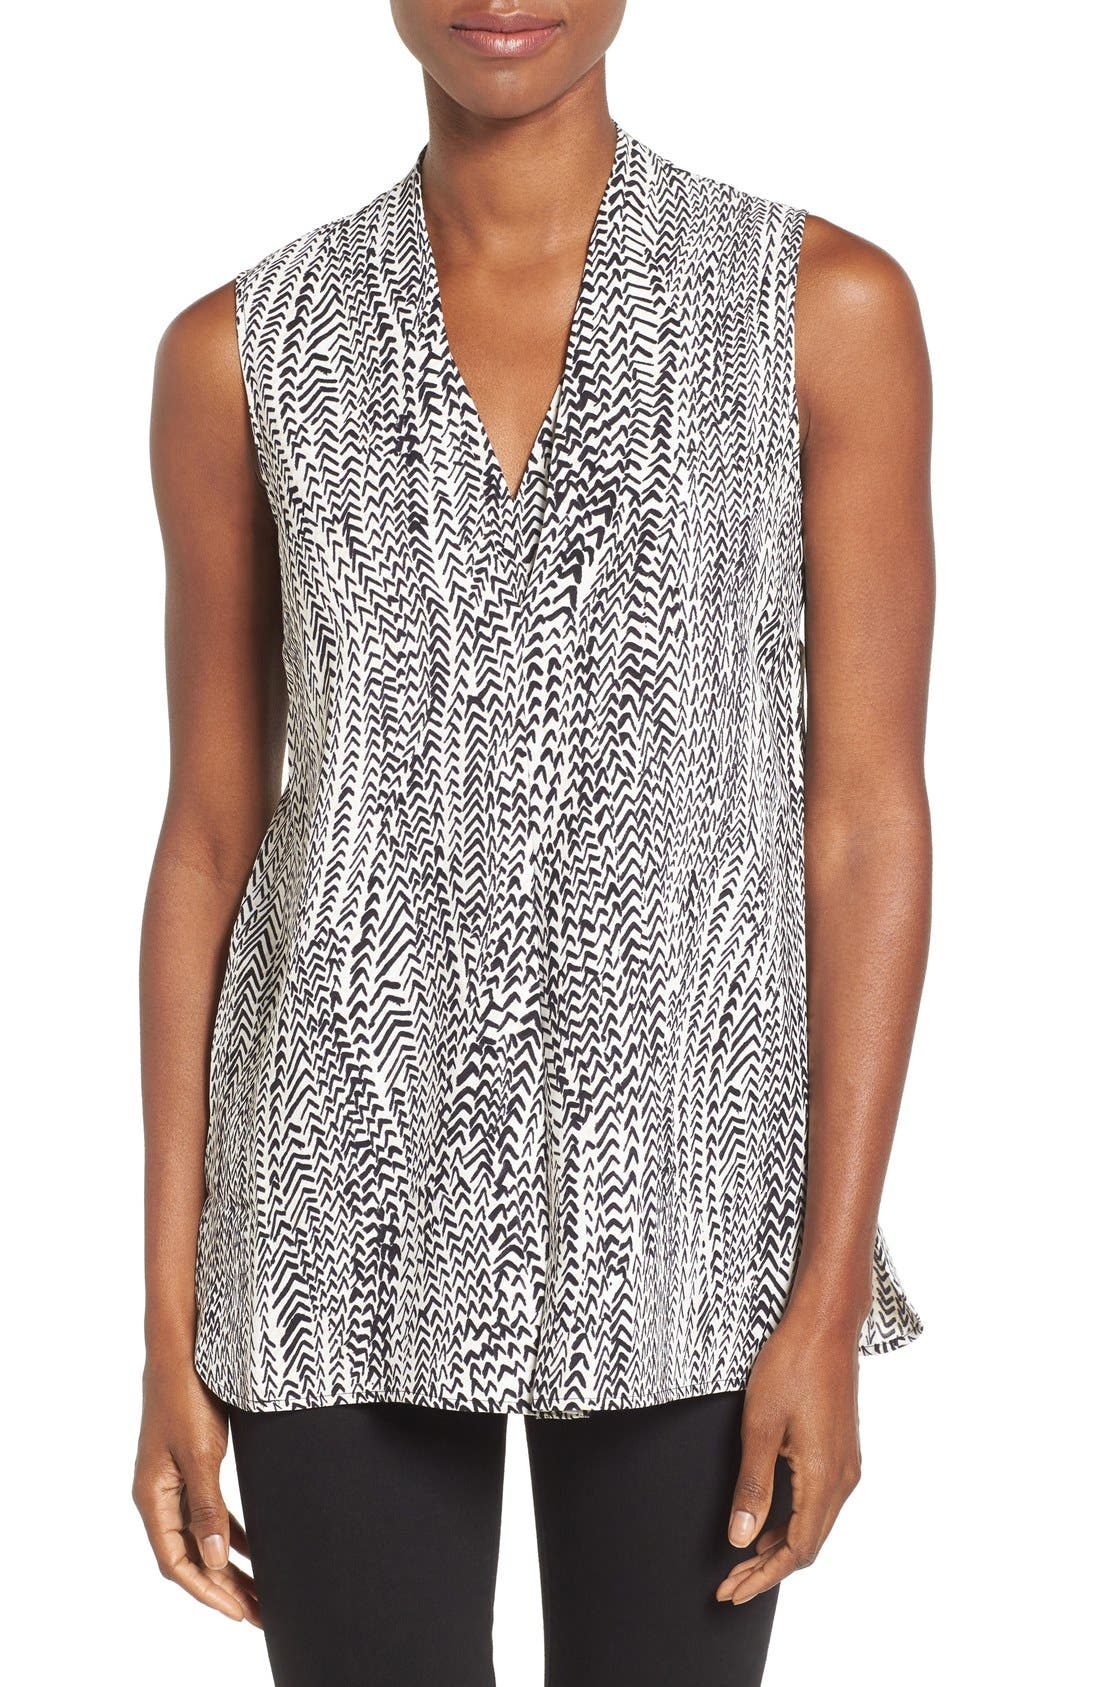 Alternate Image 1 Selected - NIC+ZOE 'In Stitches' Print Sleeveless V-Neck Top